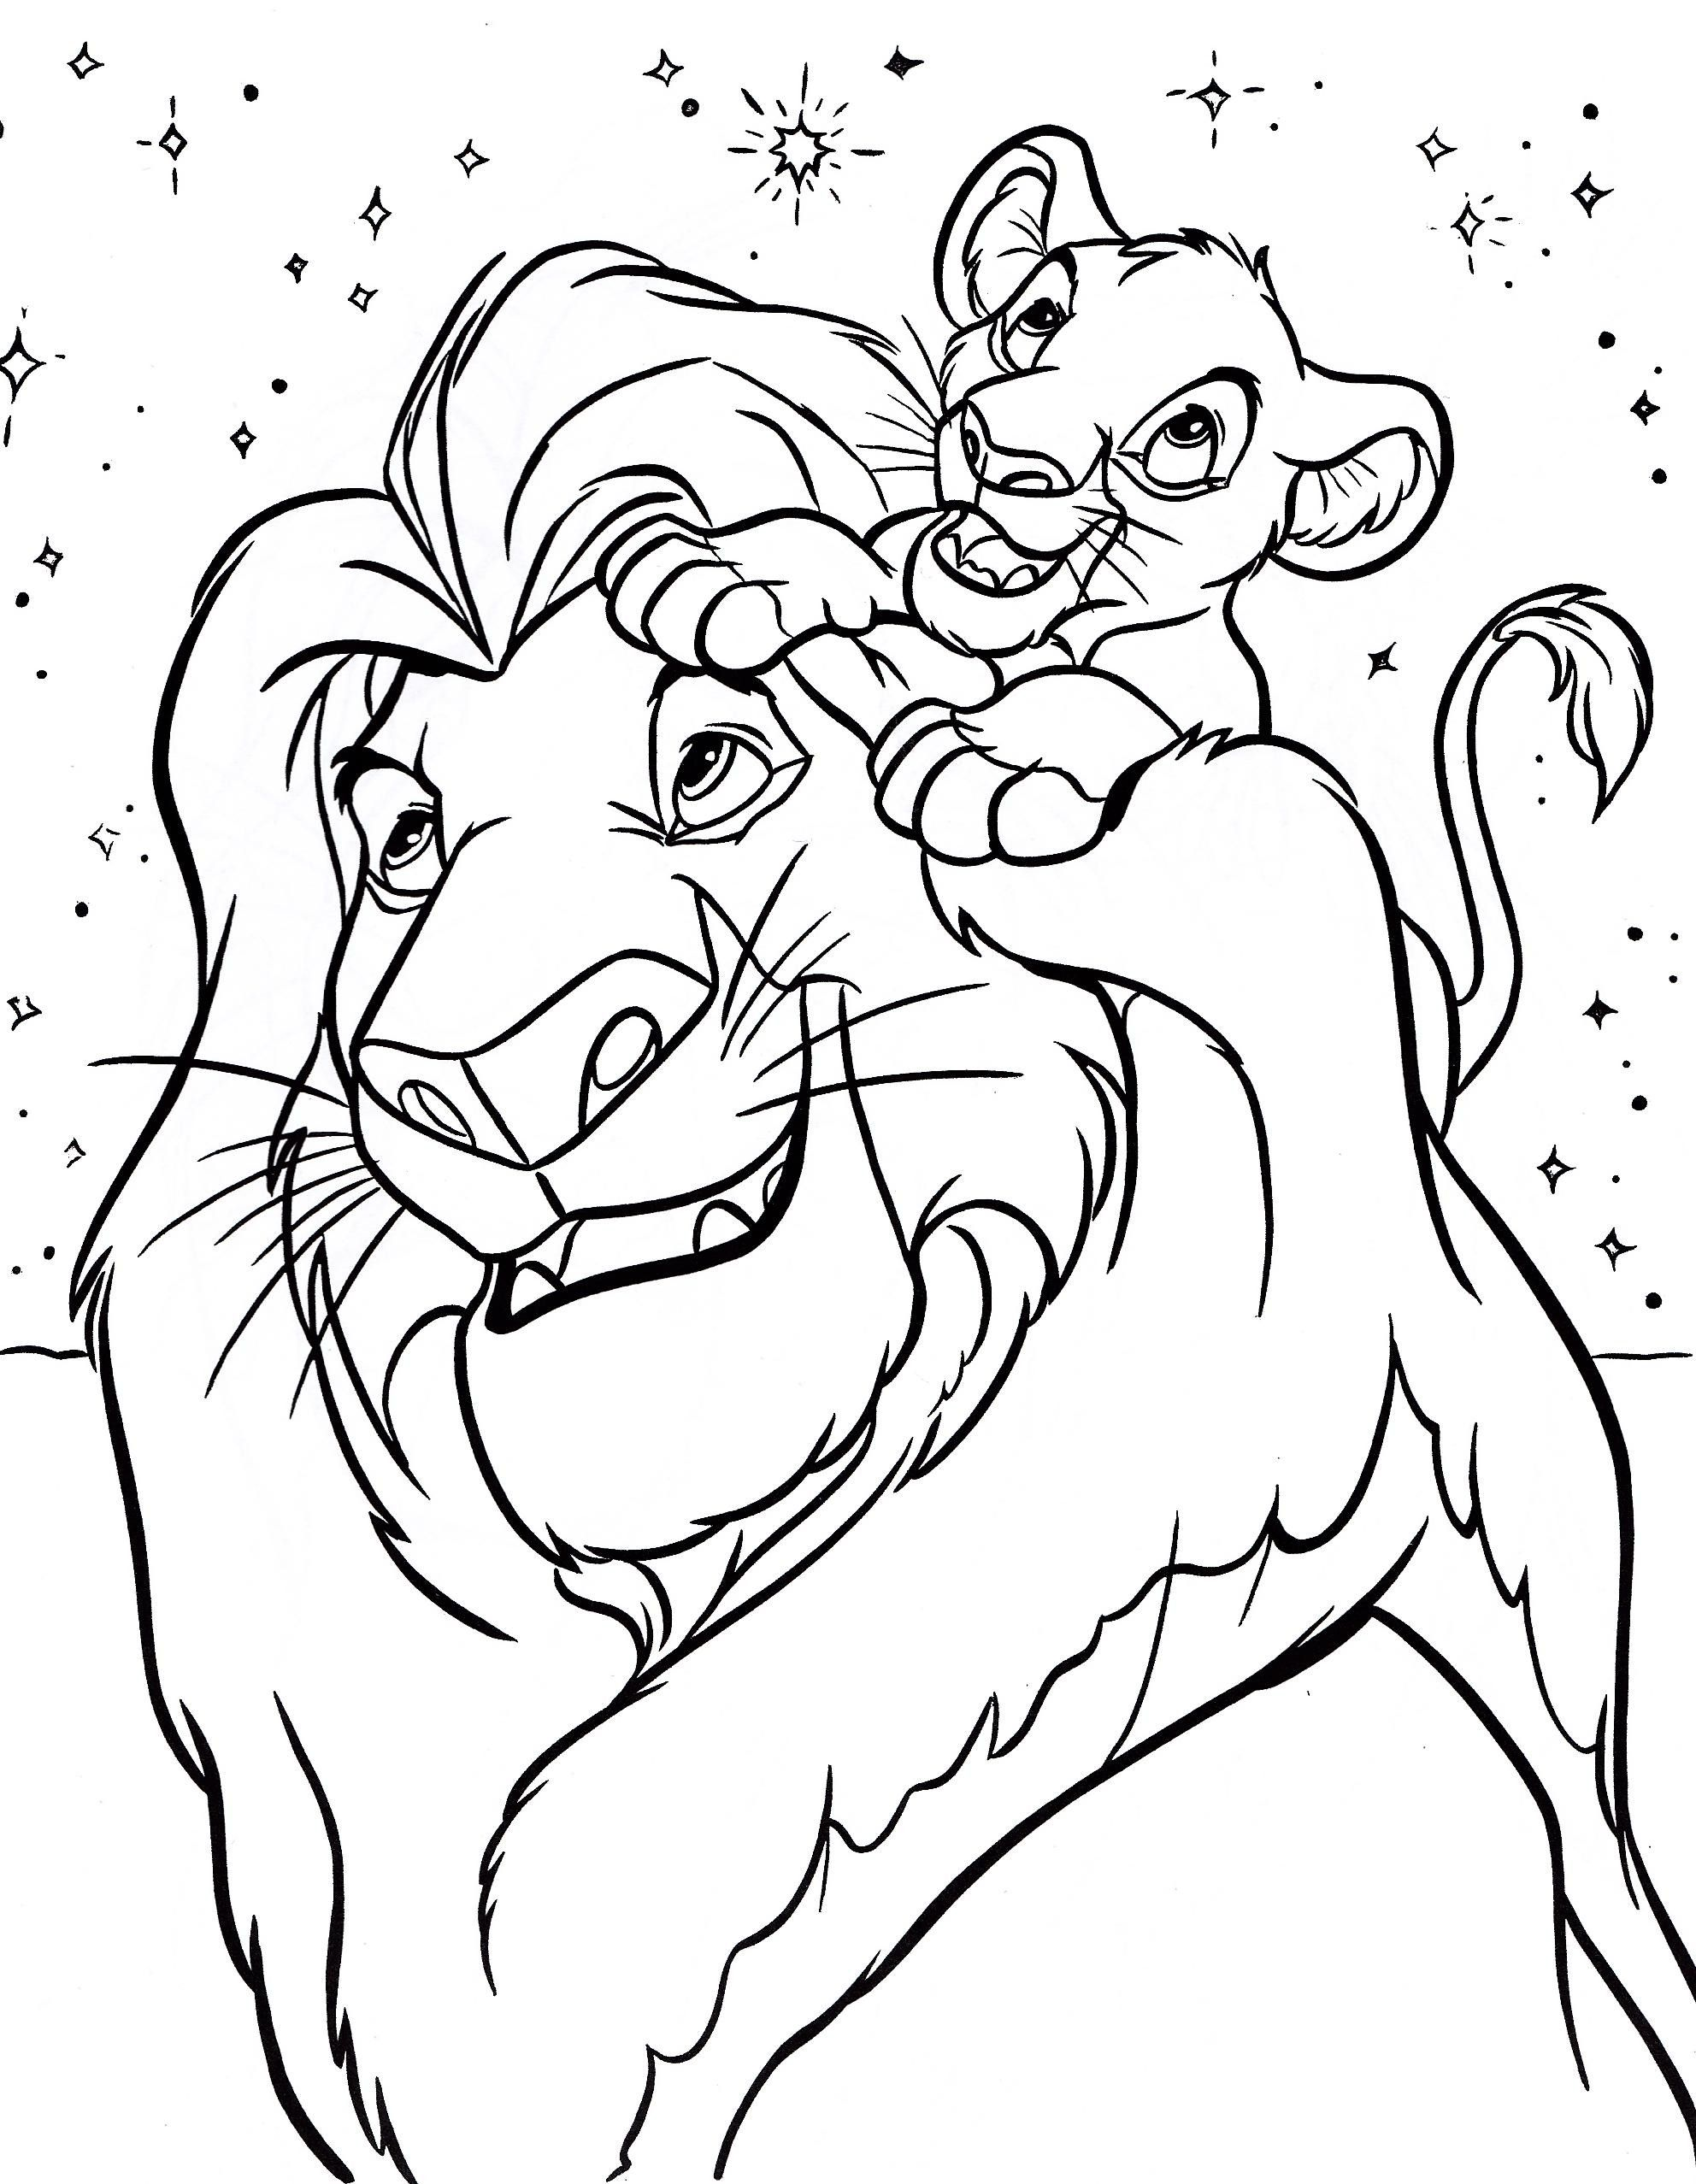 Lion Coloring Book Page Youngandtae Com Lion Coloring Pages Disney Coloring Sheets Toy Story Coloring Pages